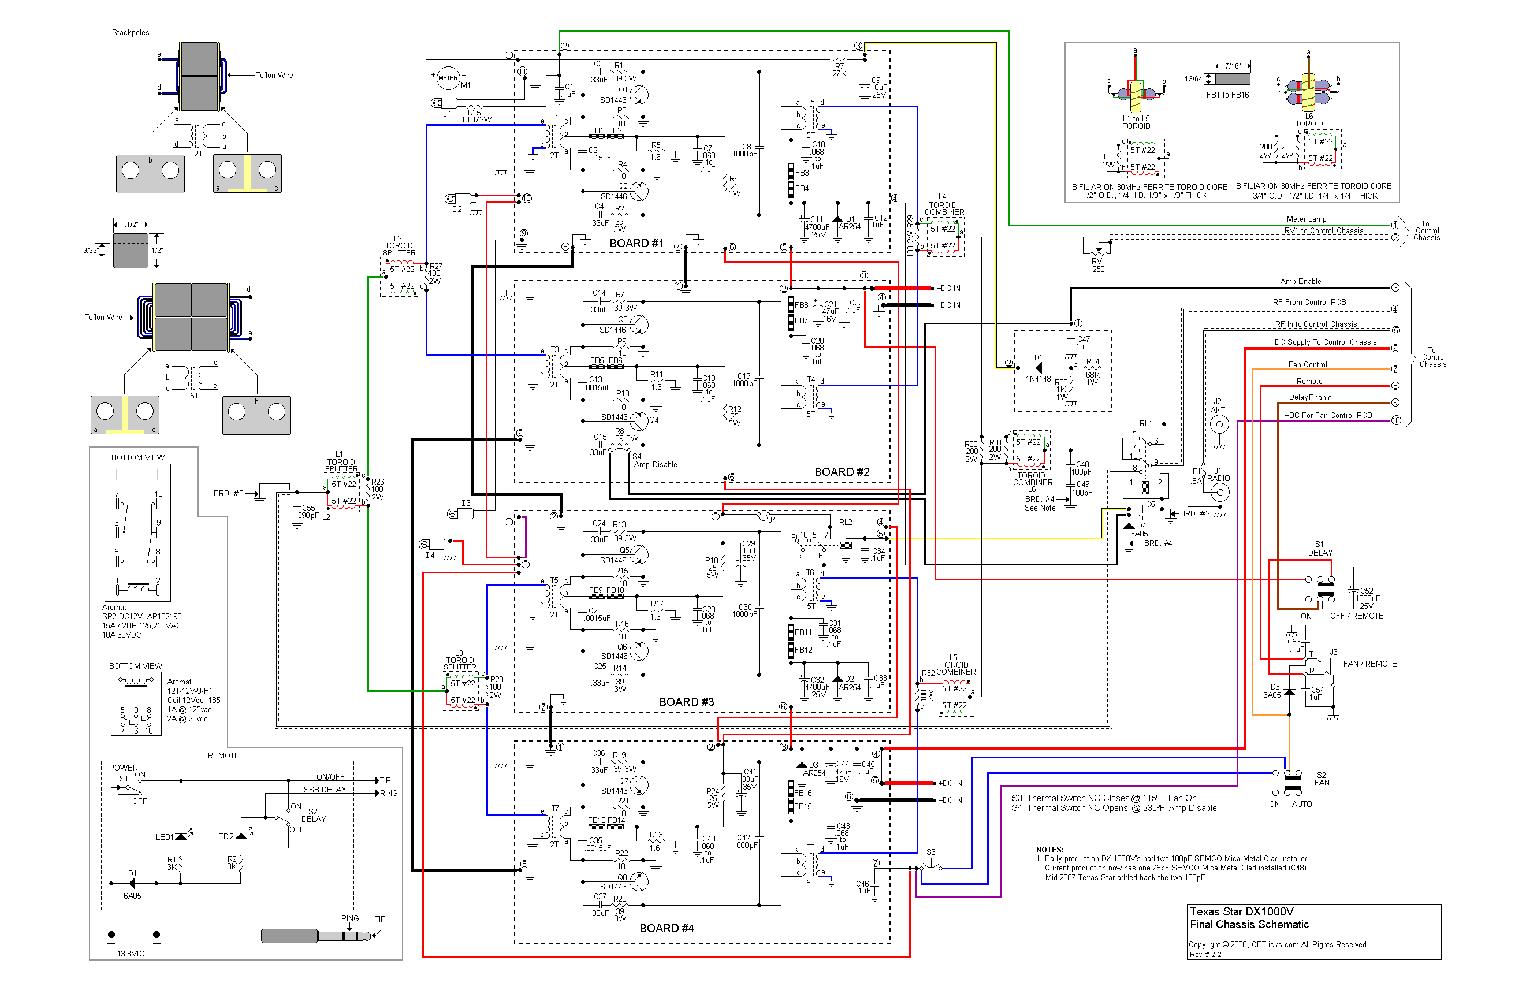 ampere meter wiring diagram ampere automotive wiring diagrams meter wiring diagram texas star texas star dx1000v amp pdf 1